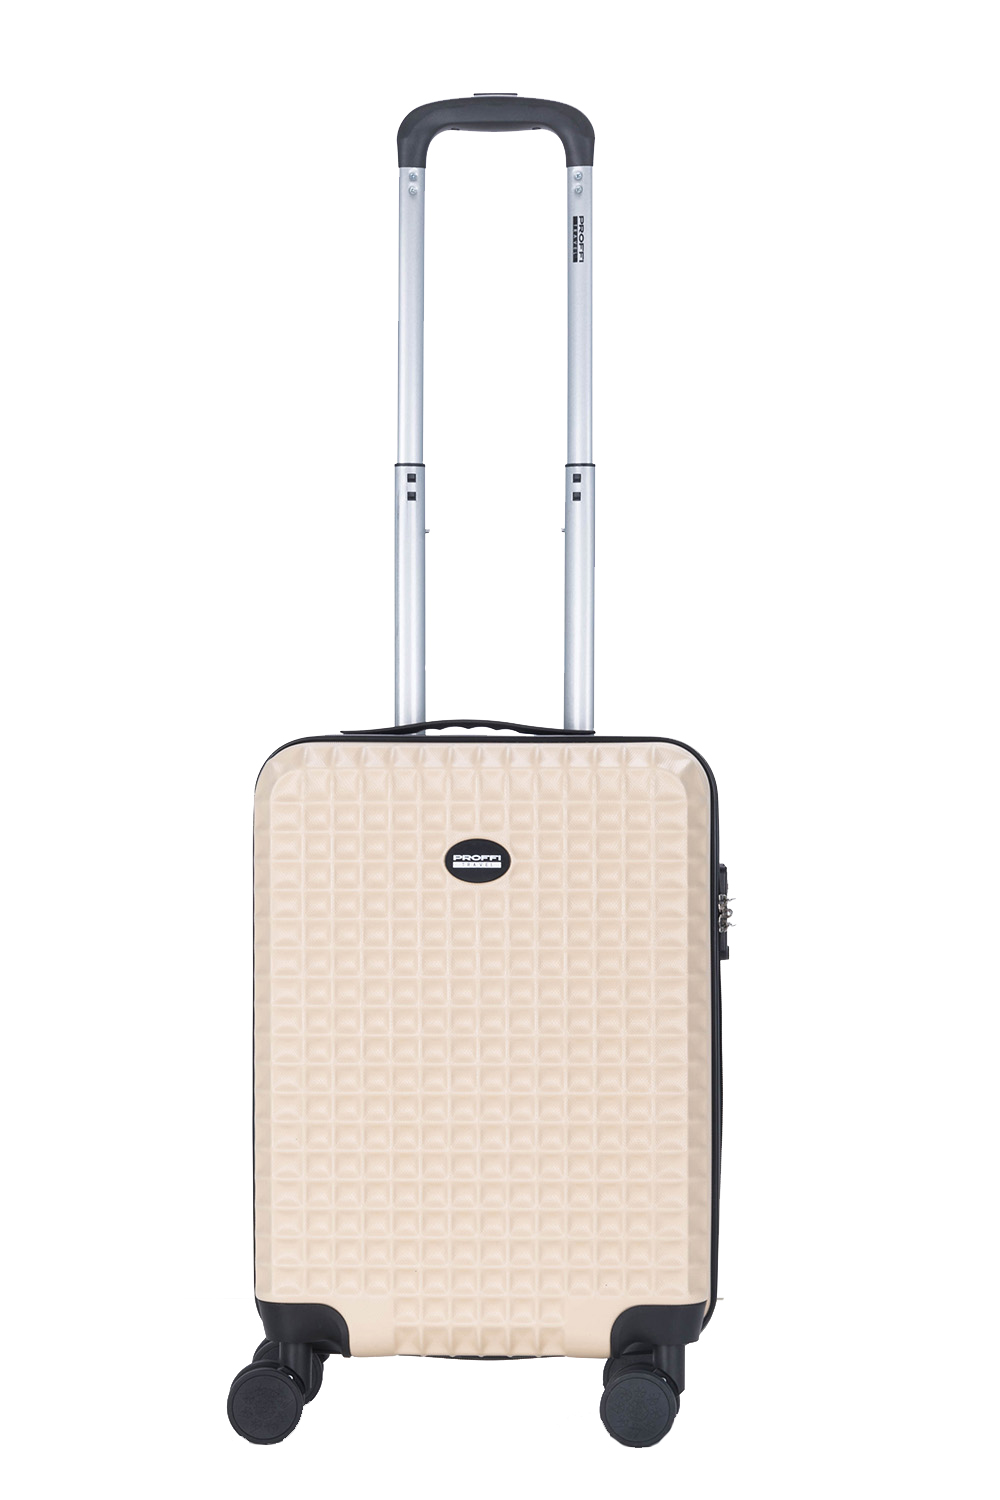 Plastic suitcase PROFFI TRAVEL Tour Quattro Smart PH9689, with built-in weighs and USB, beige, M [available from 10 11] black suitcase profi travel ph8865 m plastic with retractable handle on wheels